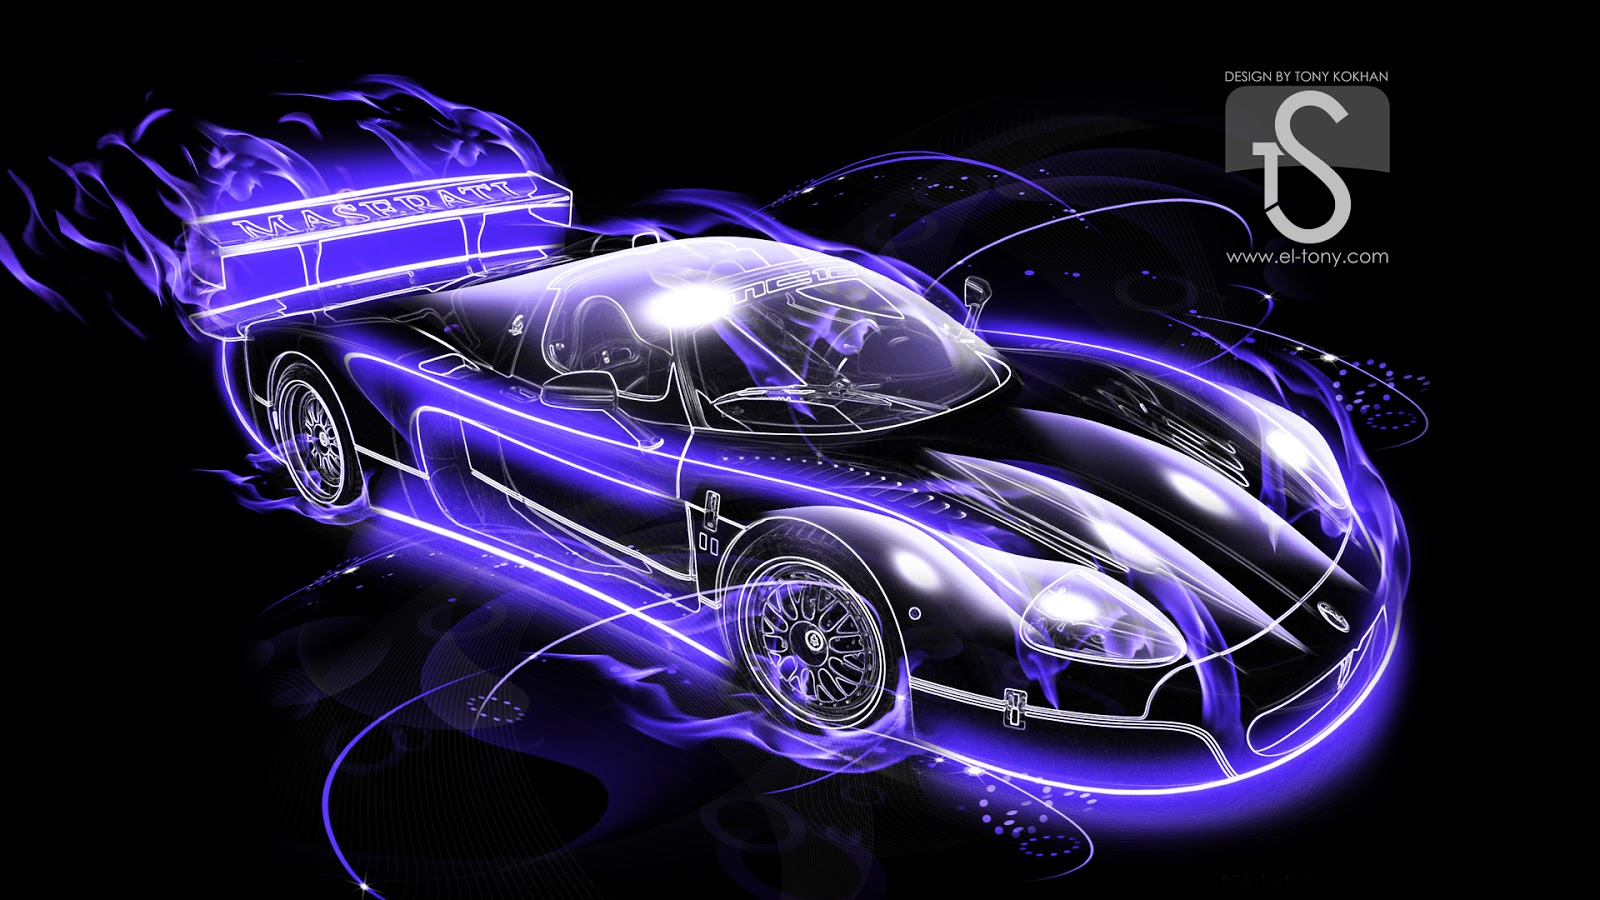 cool abstract cars hd wallpapers black car 3d abstract - Cool Cars Wallpapers 3d